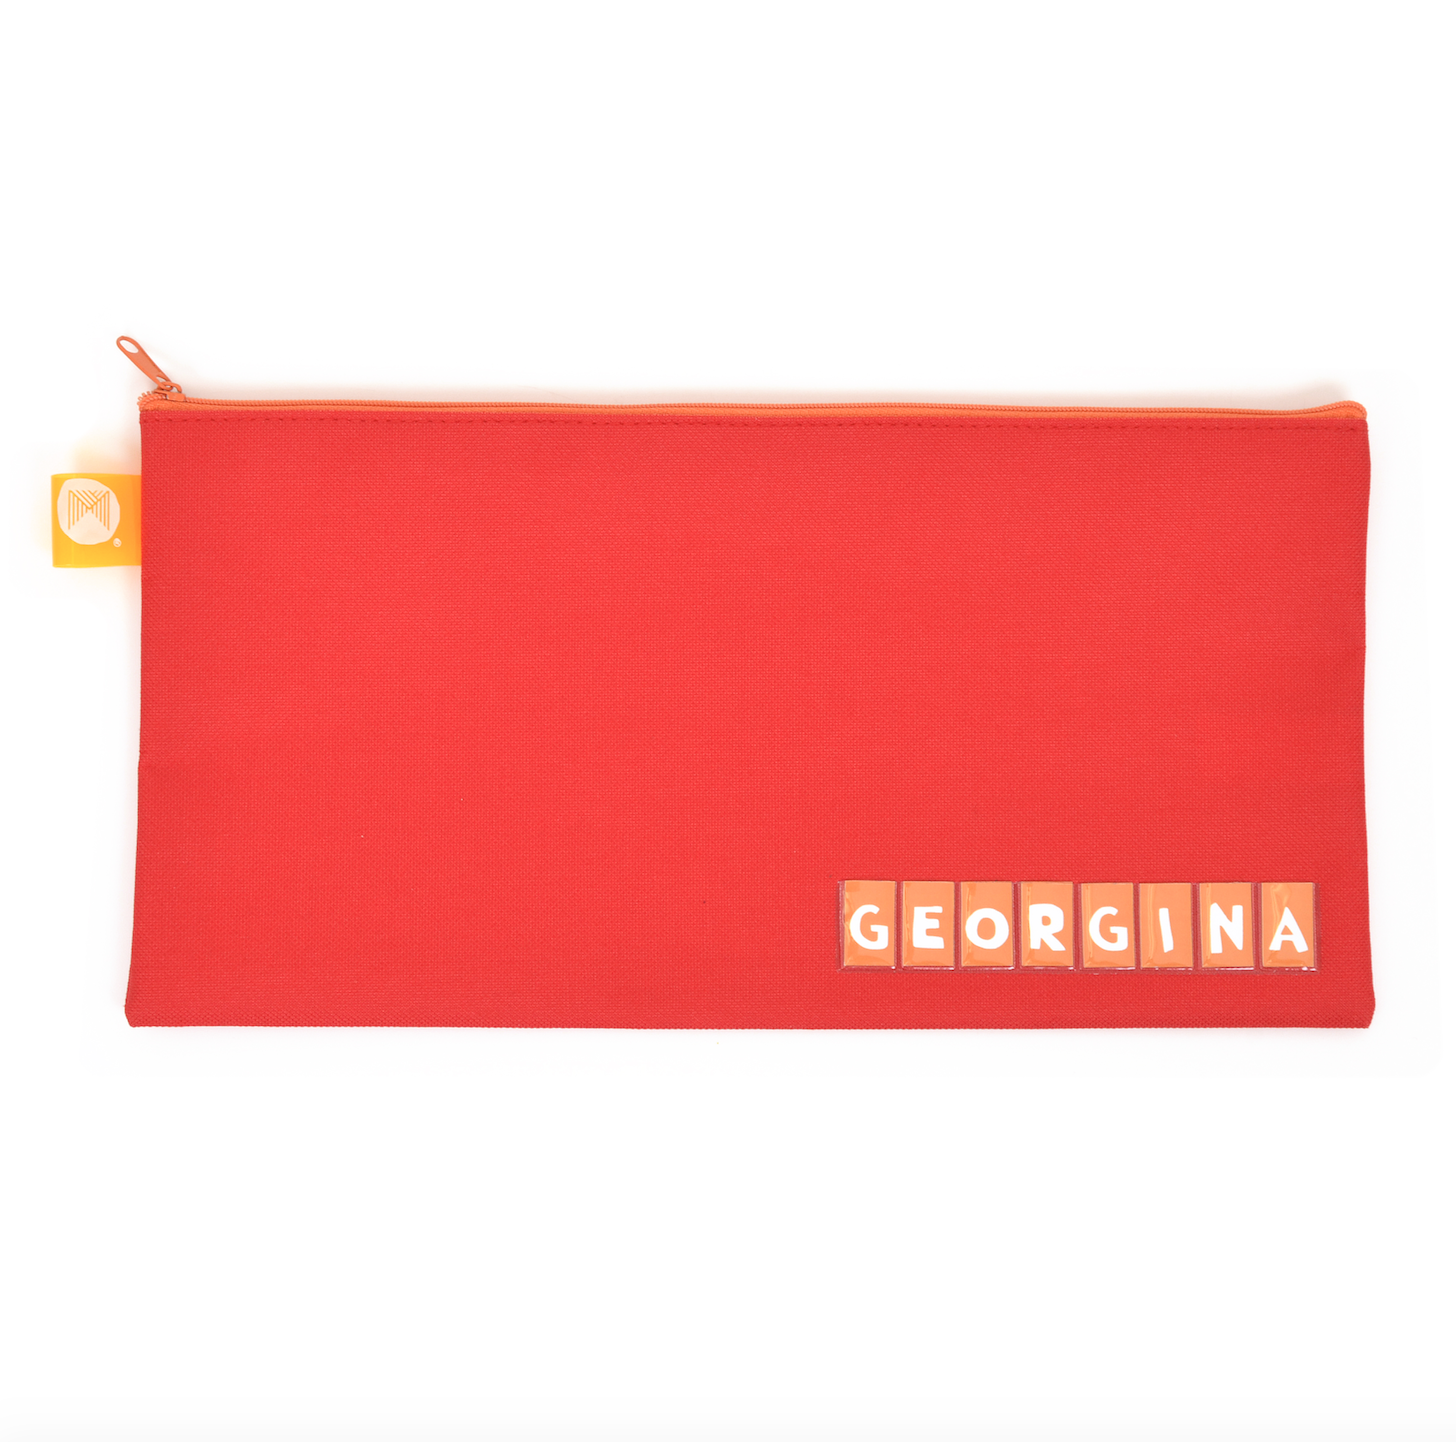 Pencil Case Name Micador 340x170mm Red